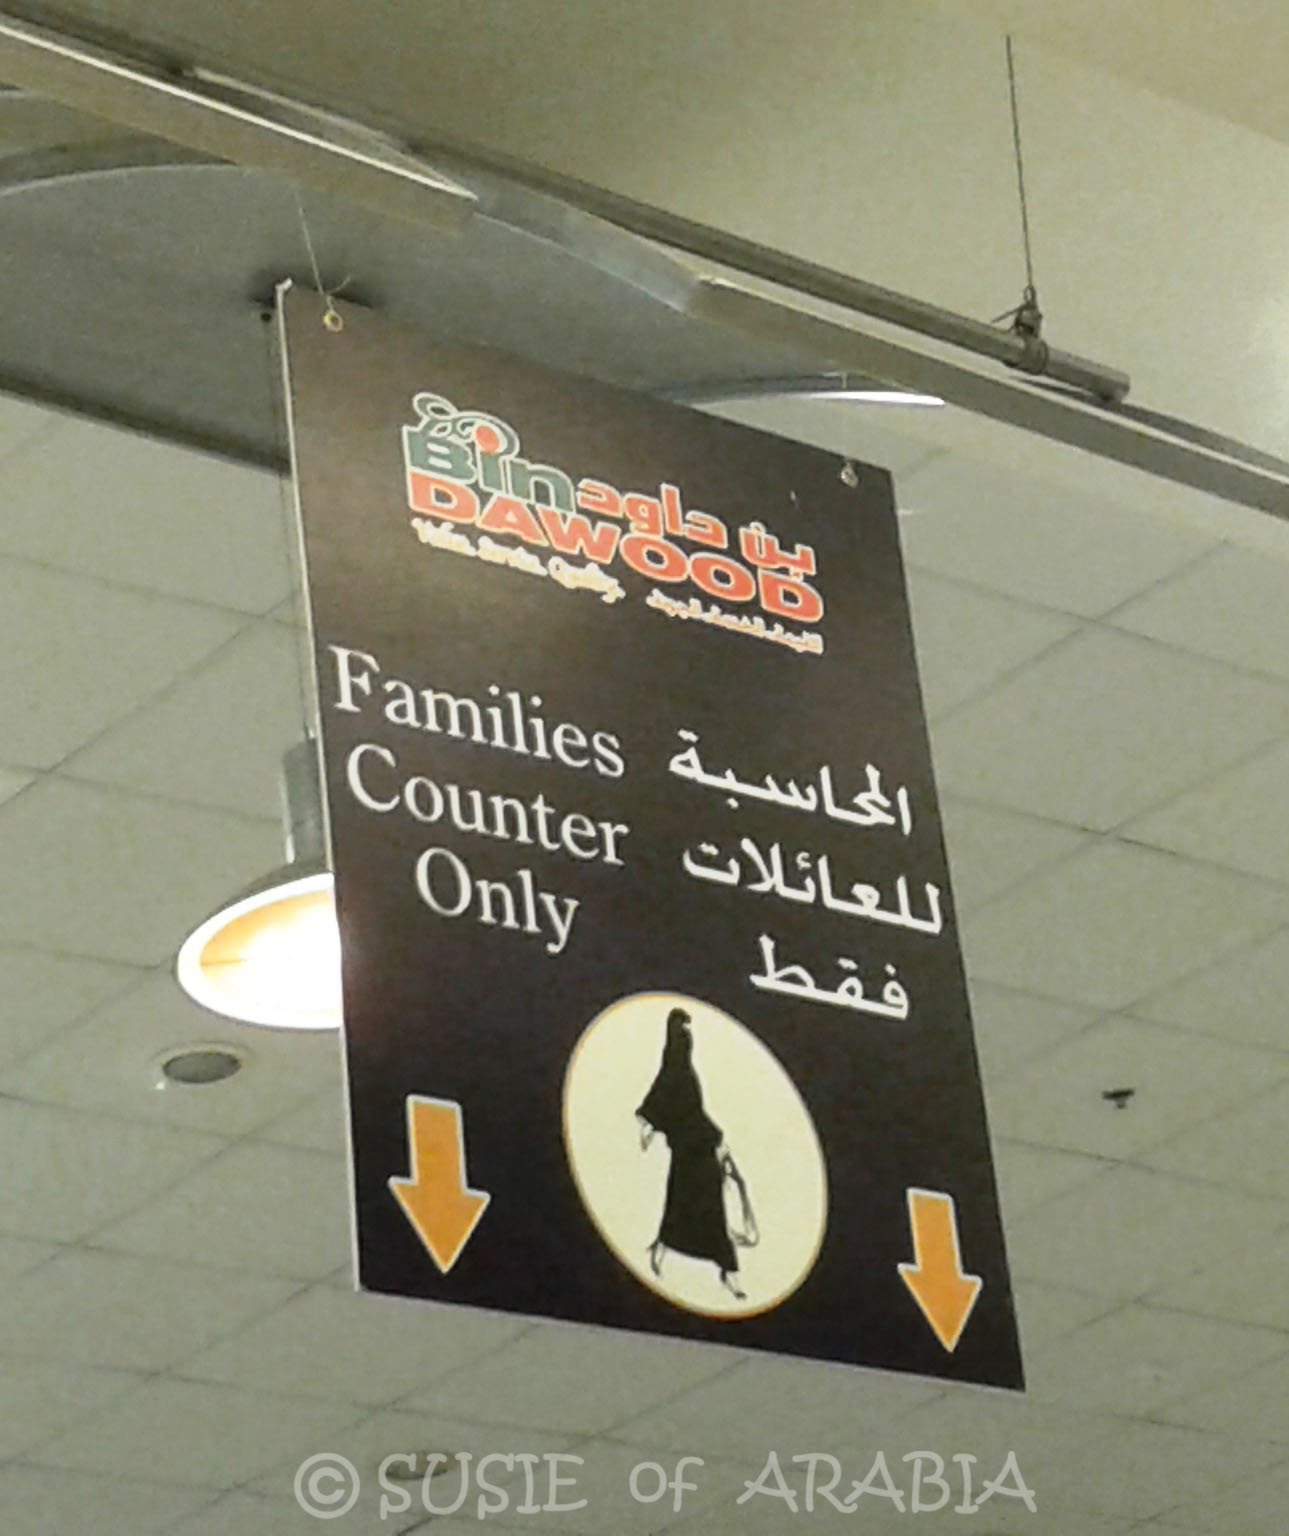 segregation in saudi arabia In saudi arabia, shari'ah law governs personal status matters  the new labour  code (introduced in 2005) implies that gender segregation in the work place.